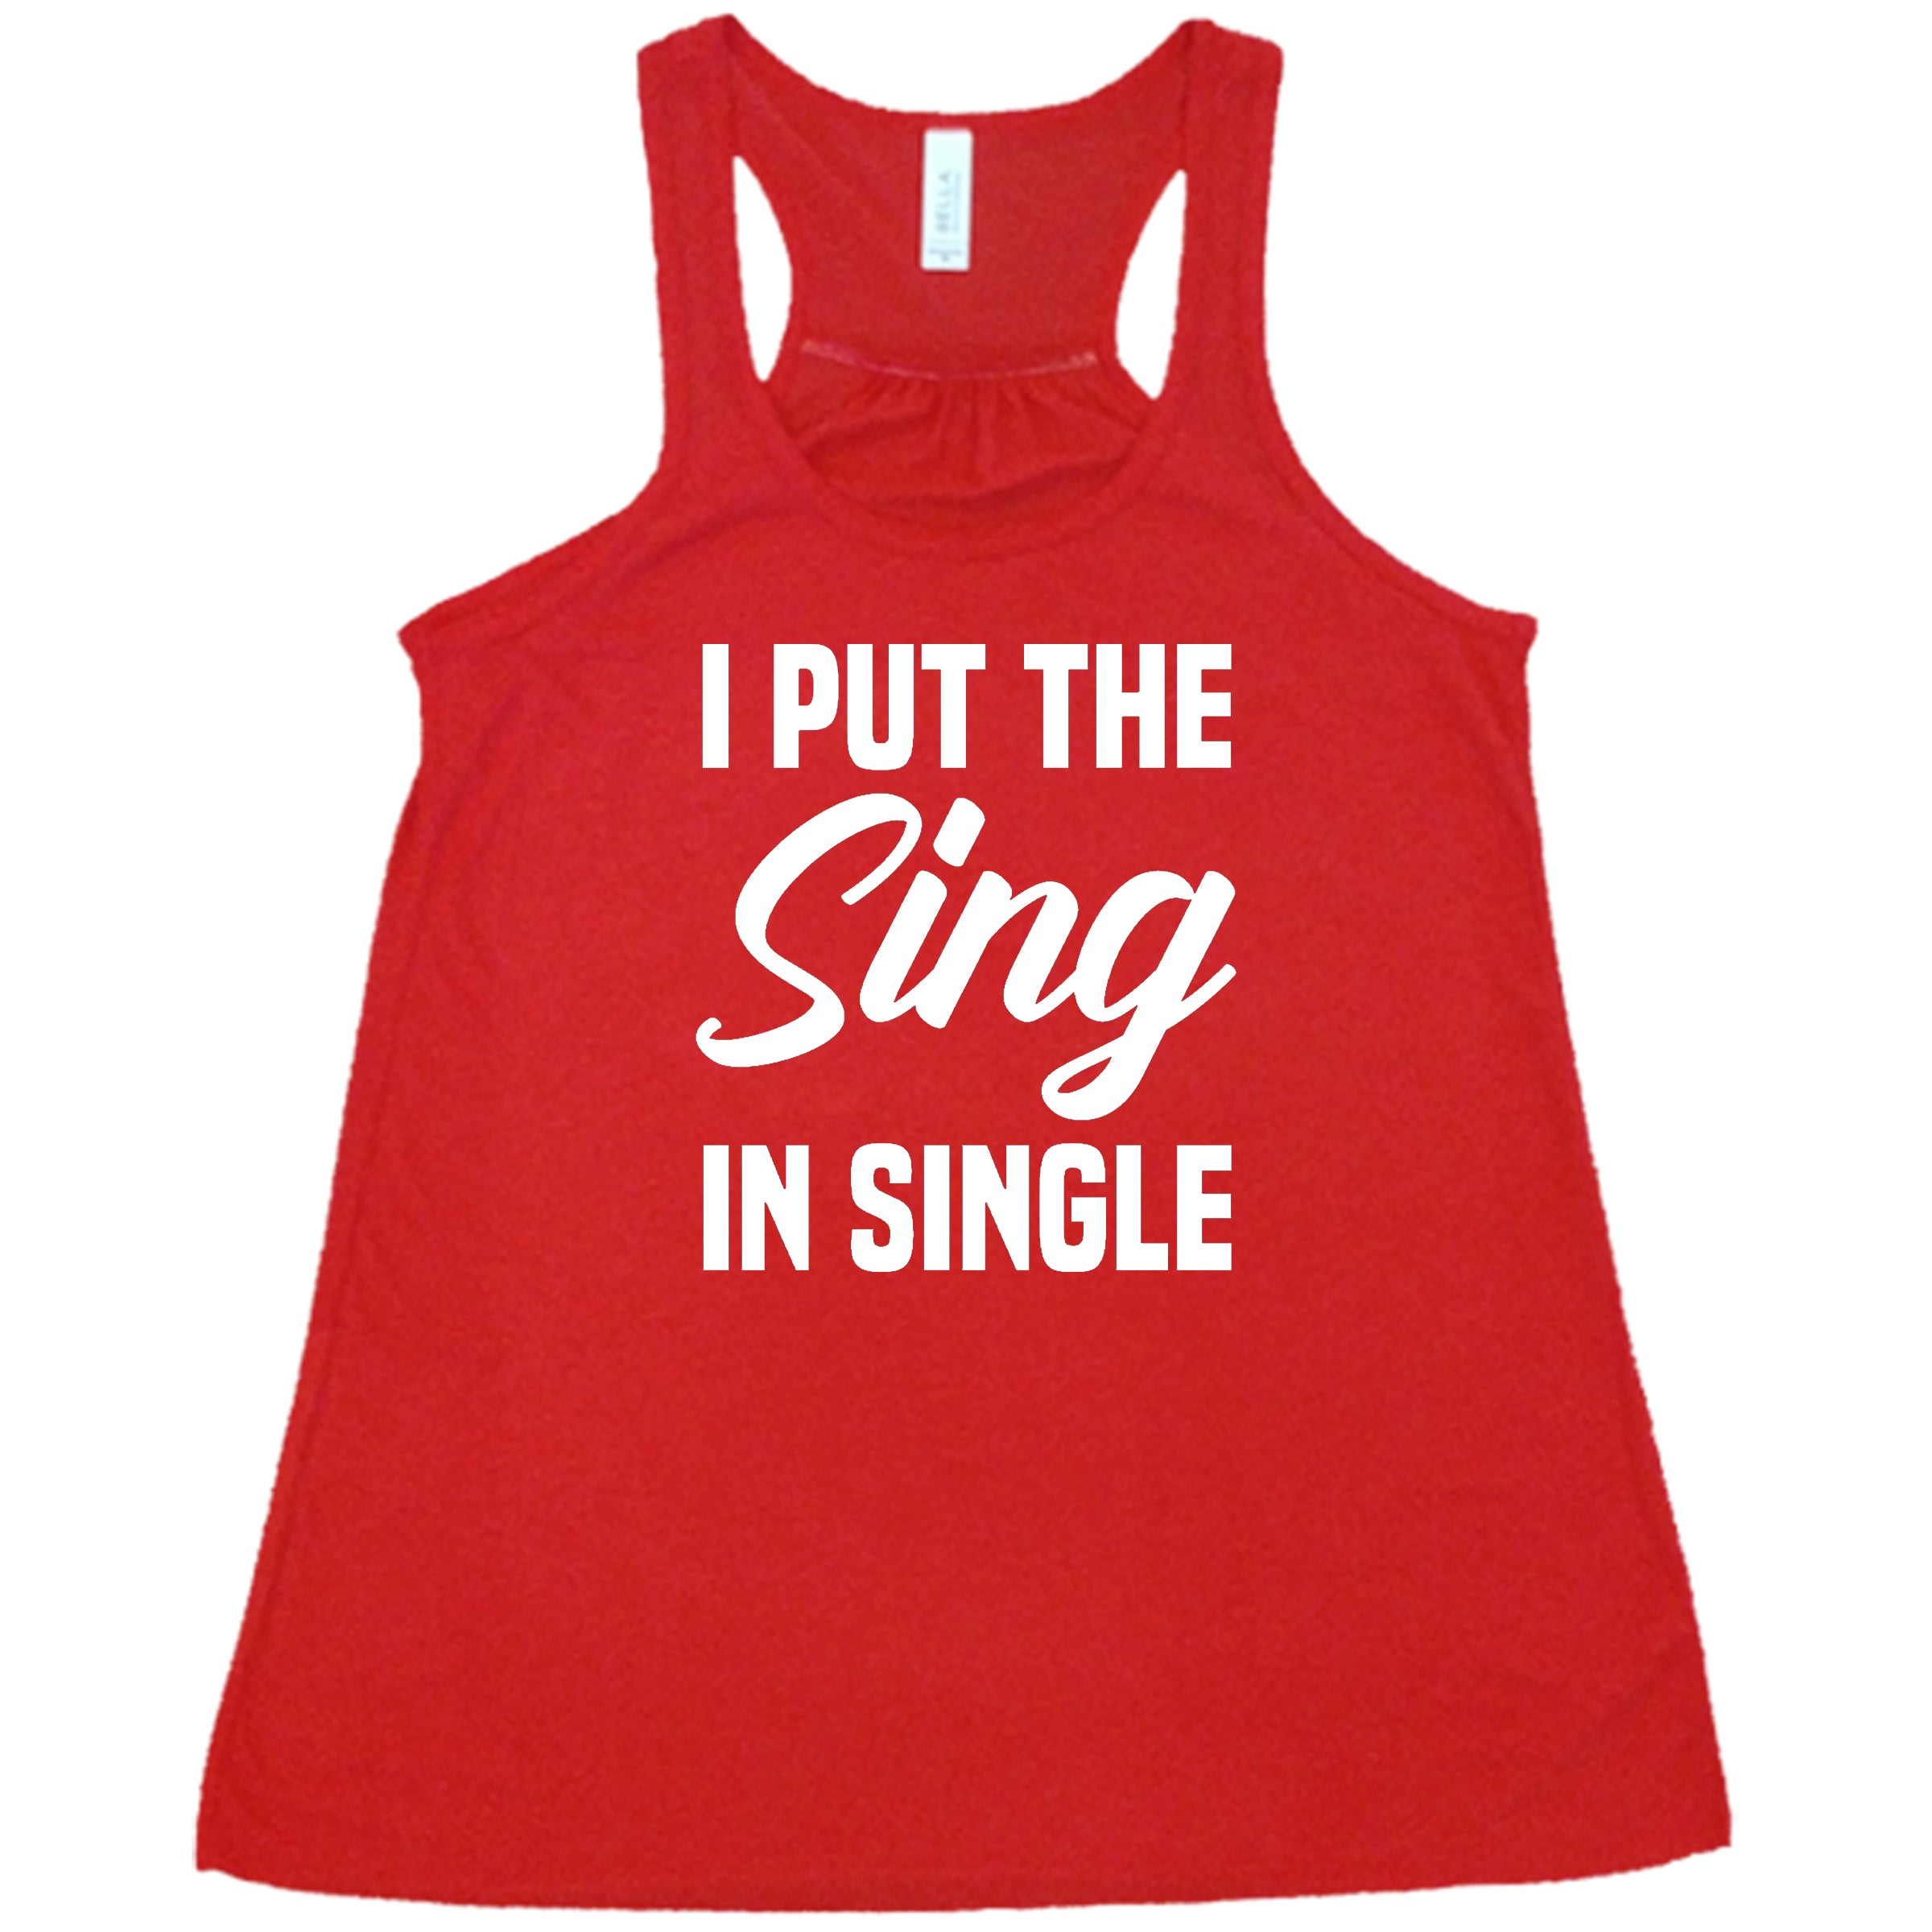 I Put The Sing In Single Shirt